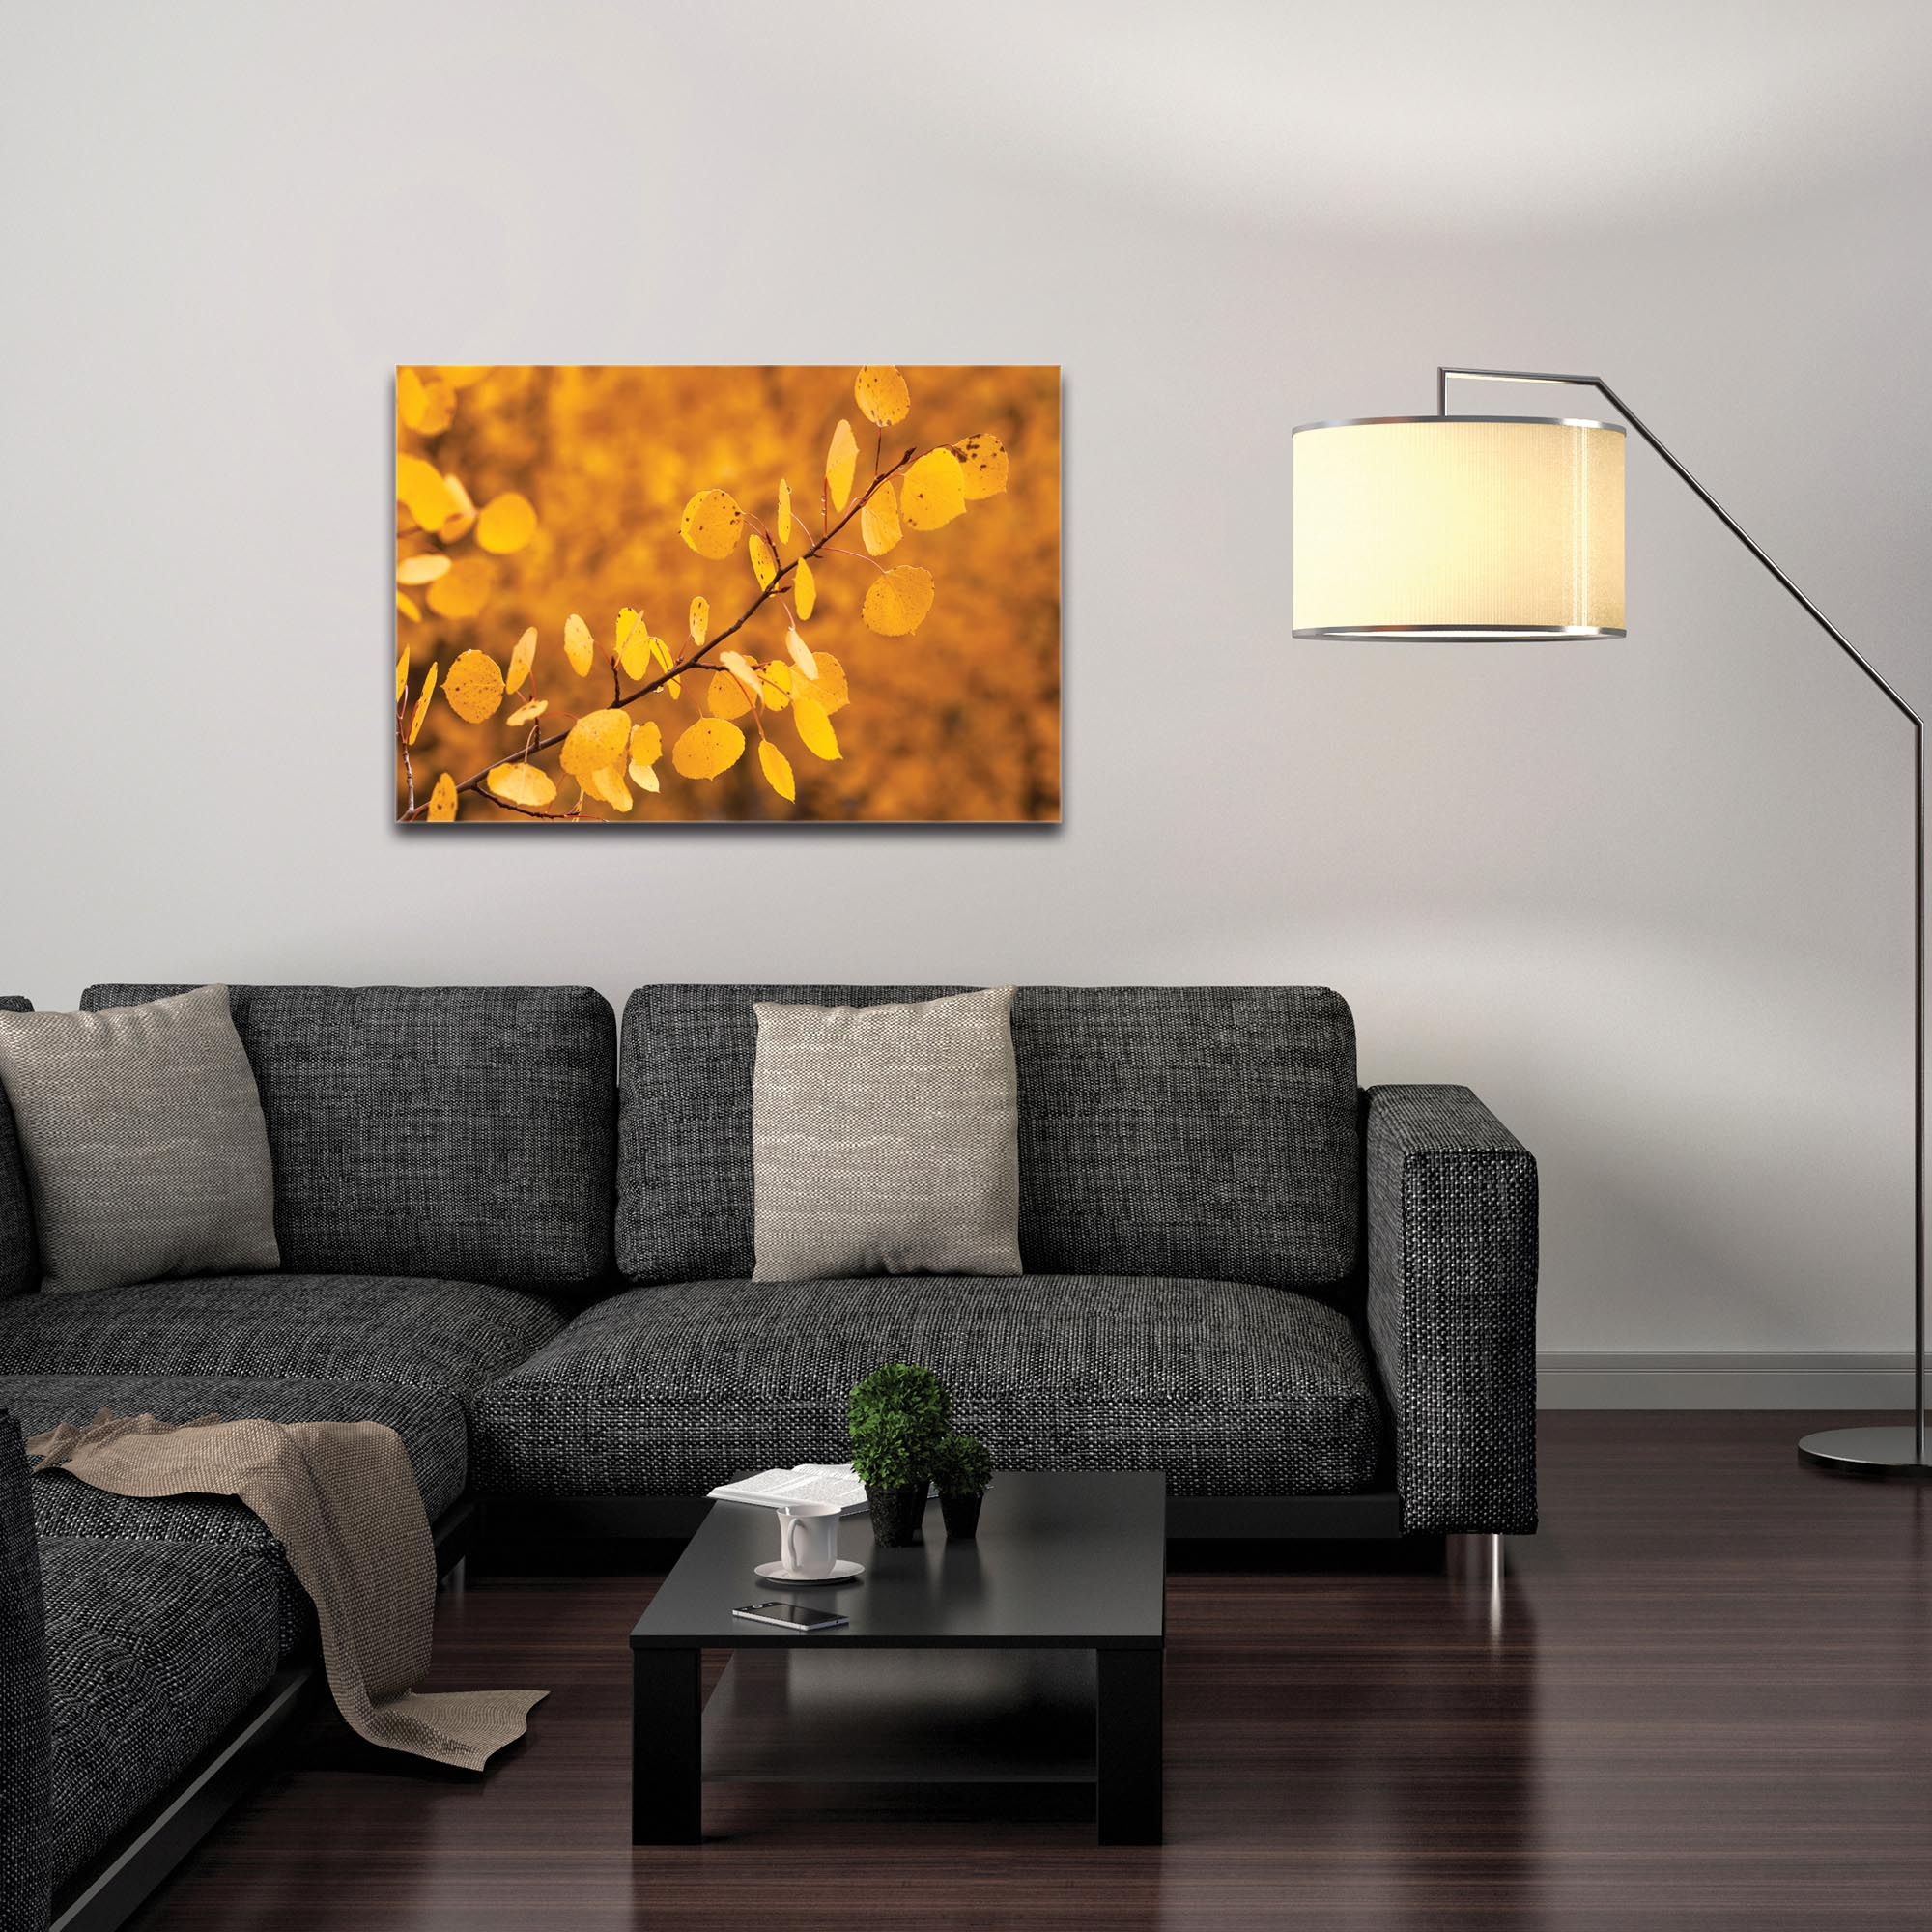 Nature Photography 'Yellow Leaves' - Autumn Leaves Art on Metal or Plexiglass - Image 3